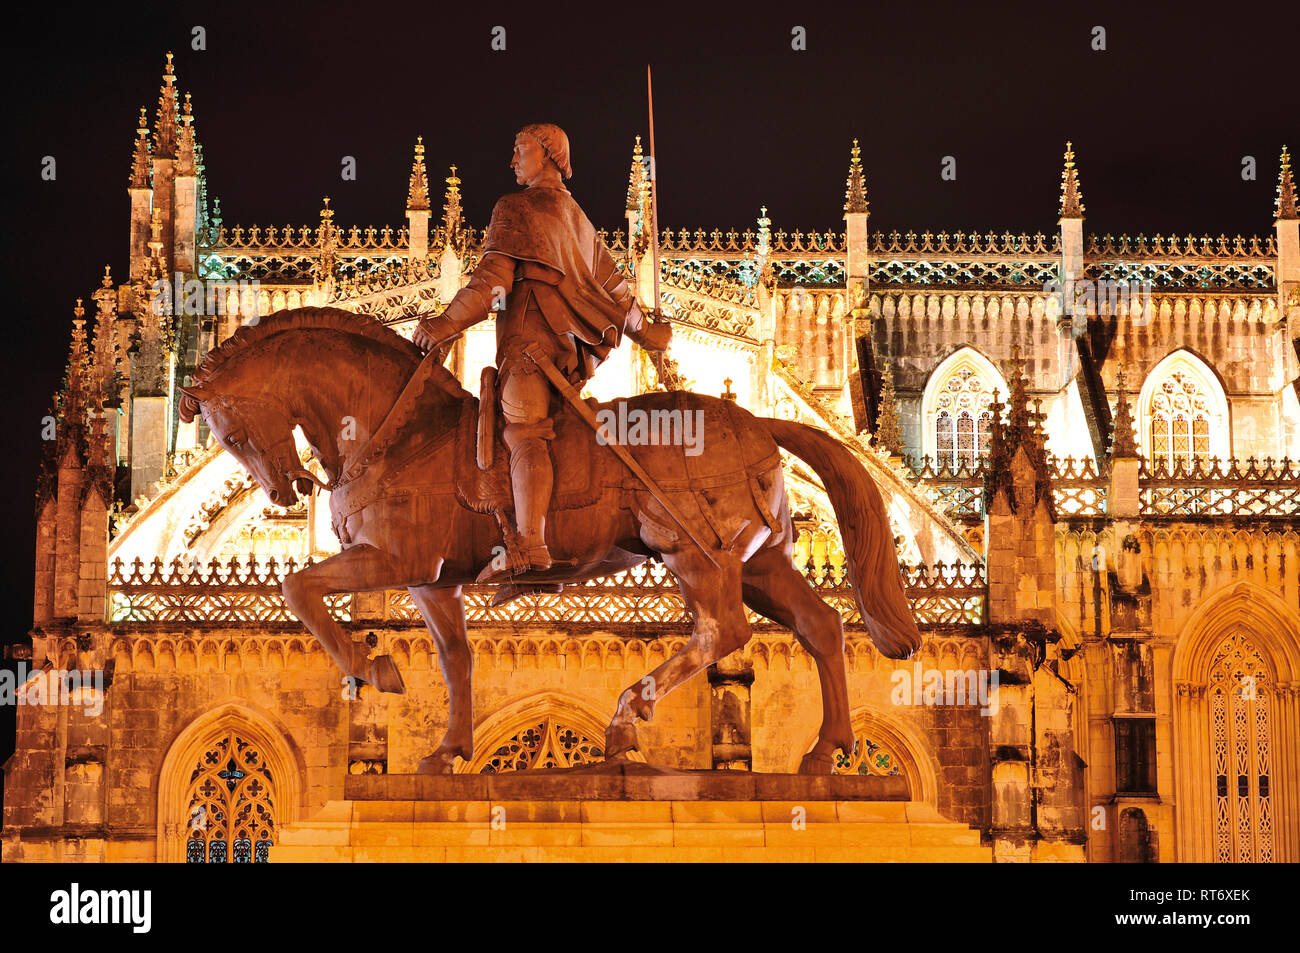 Nocturnal and lateral view of gothic monastery and pedestrian statue of medieval knight - Stock Image